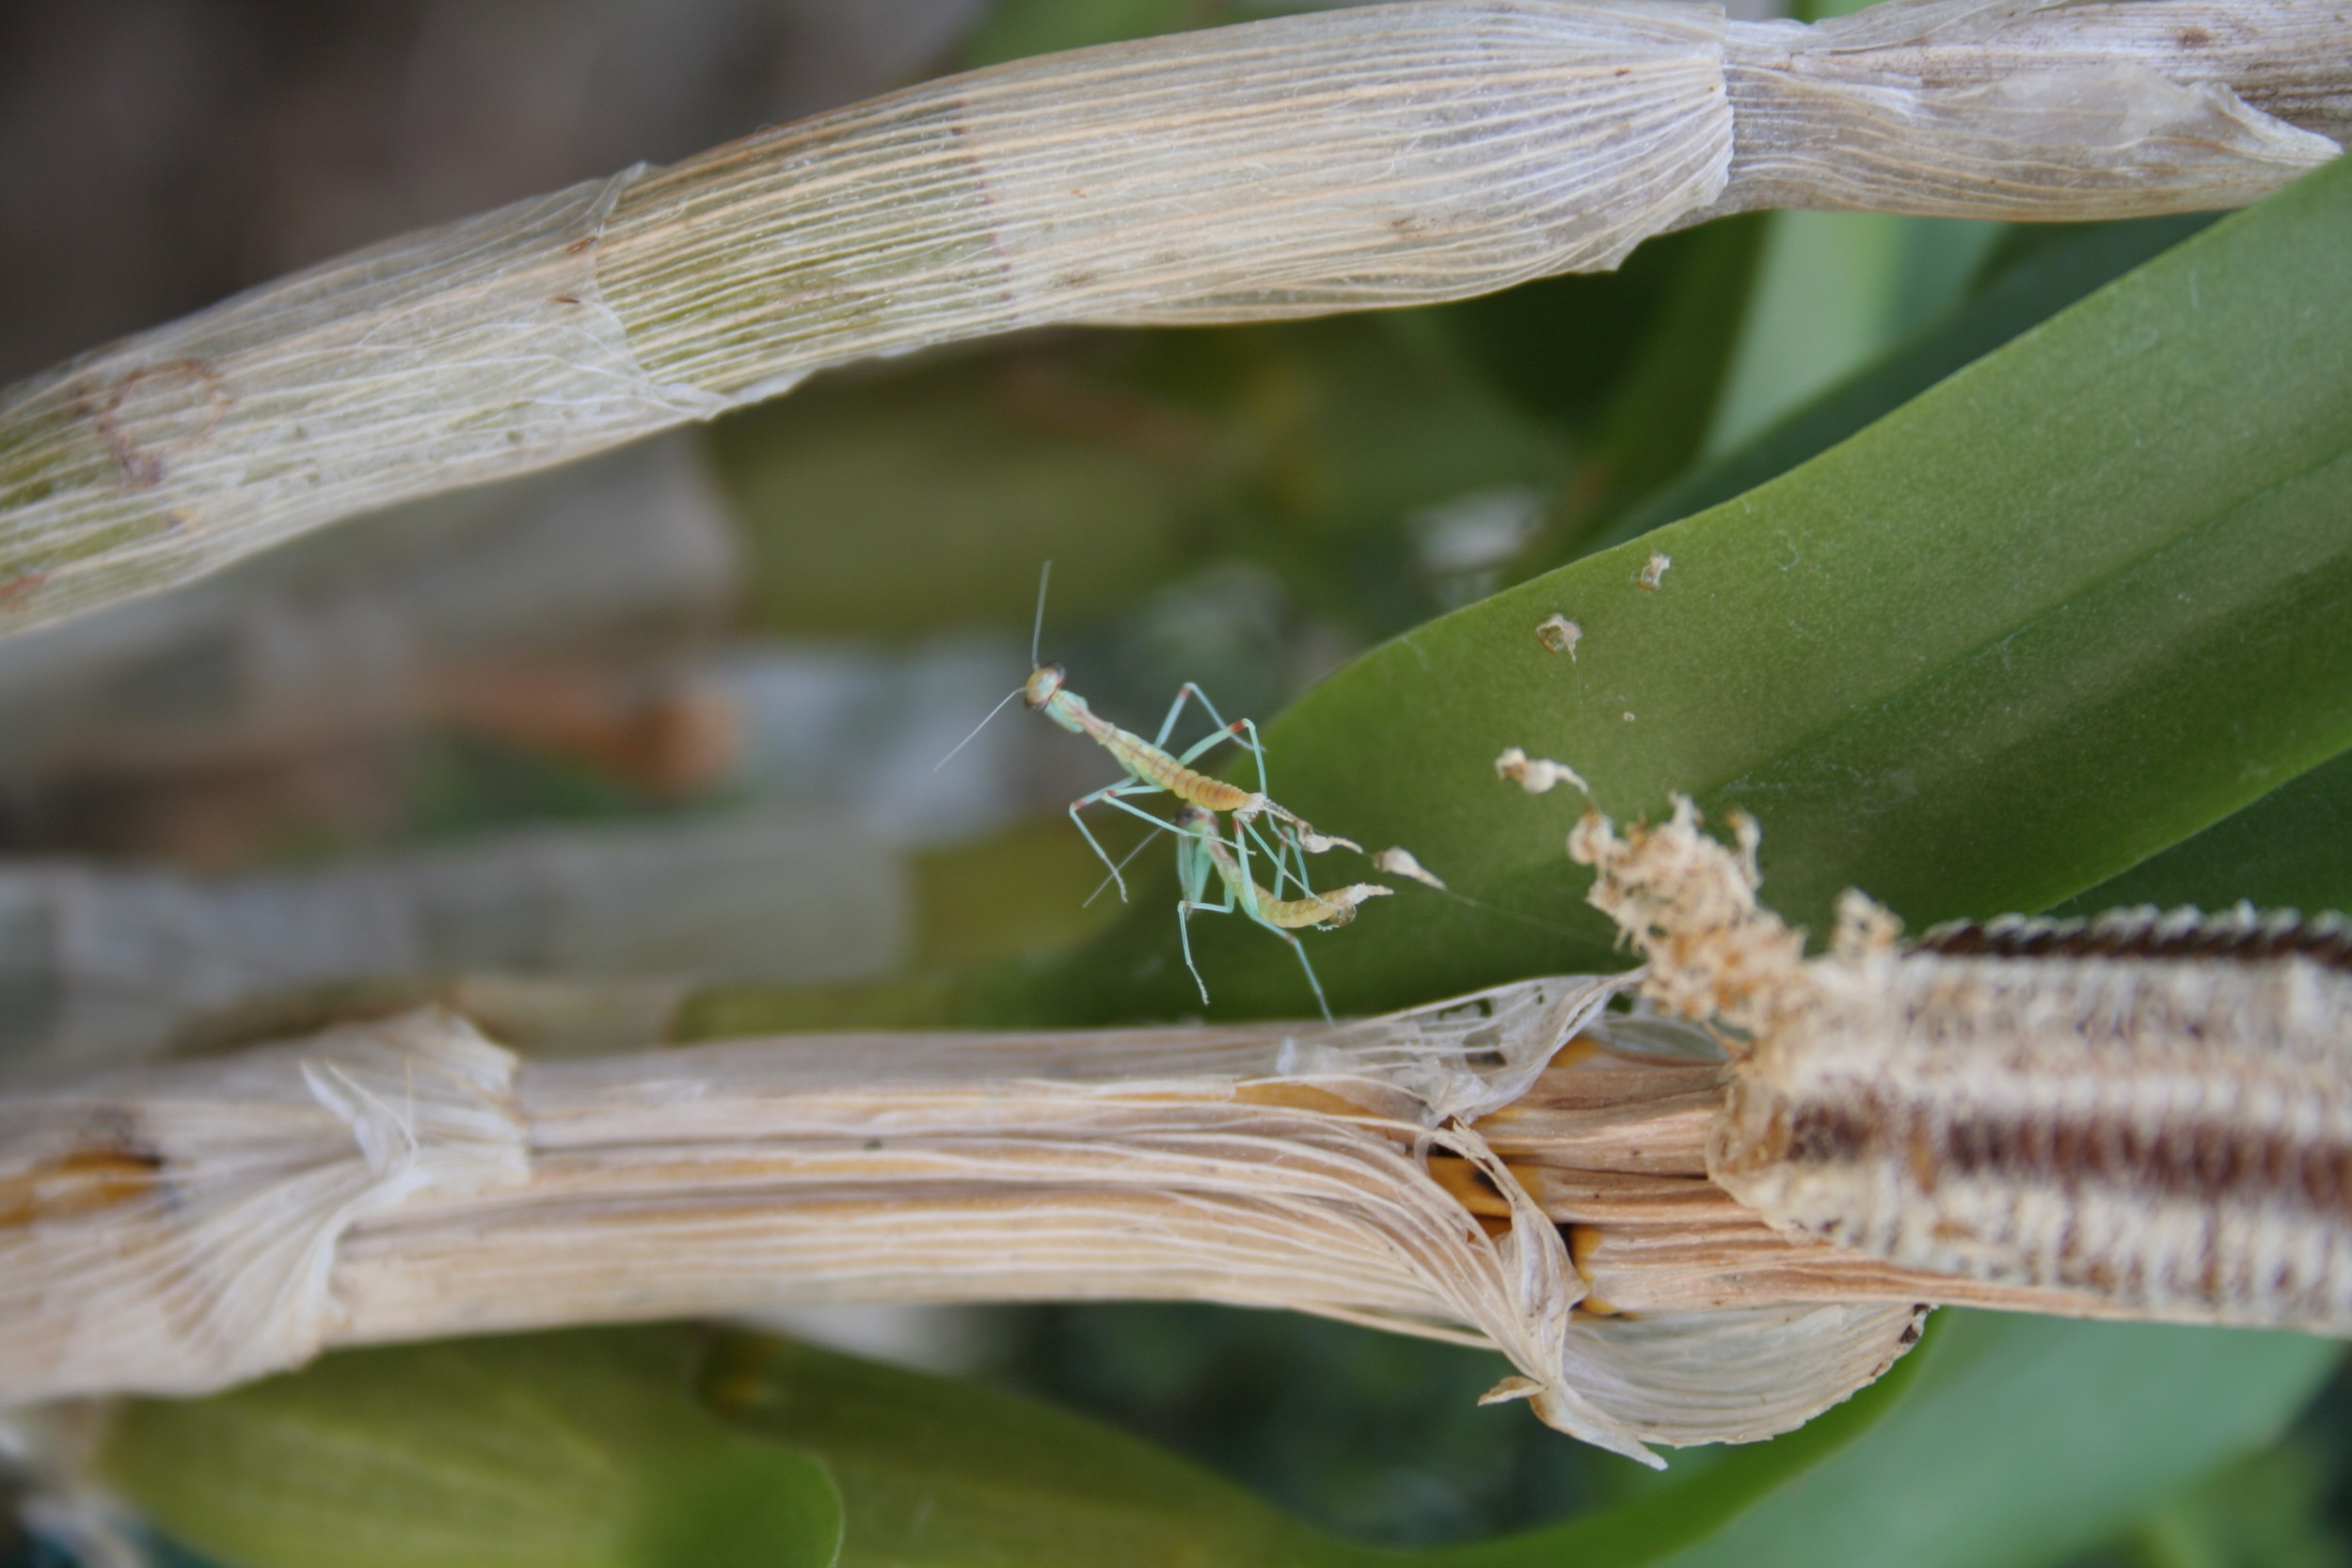 Graceful Sale Egg Sac Charles Praying Meaning Hatching Preying Mantis Repel Out Life Green Praying Mantis Egg Sac Gestation Period Praying Mantis Egg Sack houzz 01 Praying Mantis Egg Sack